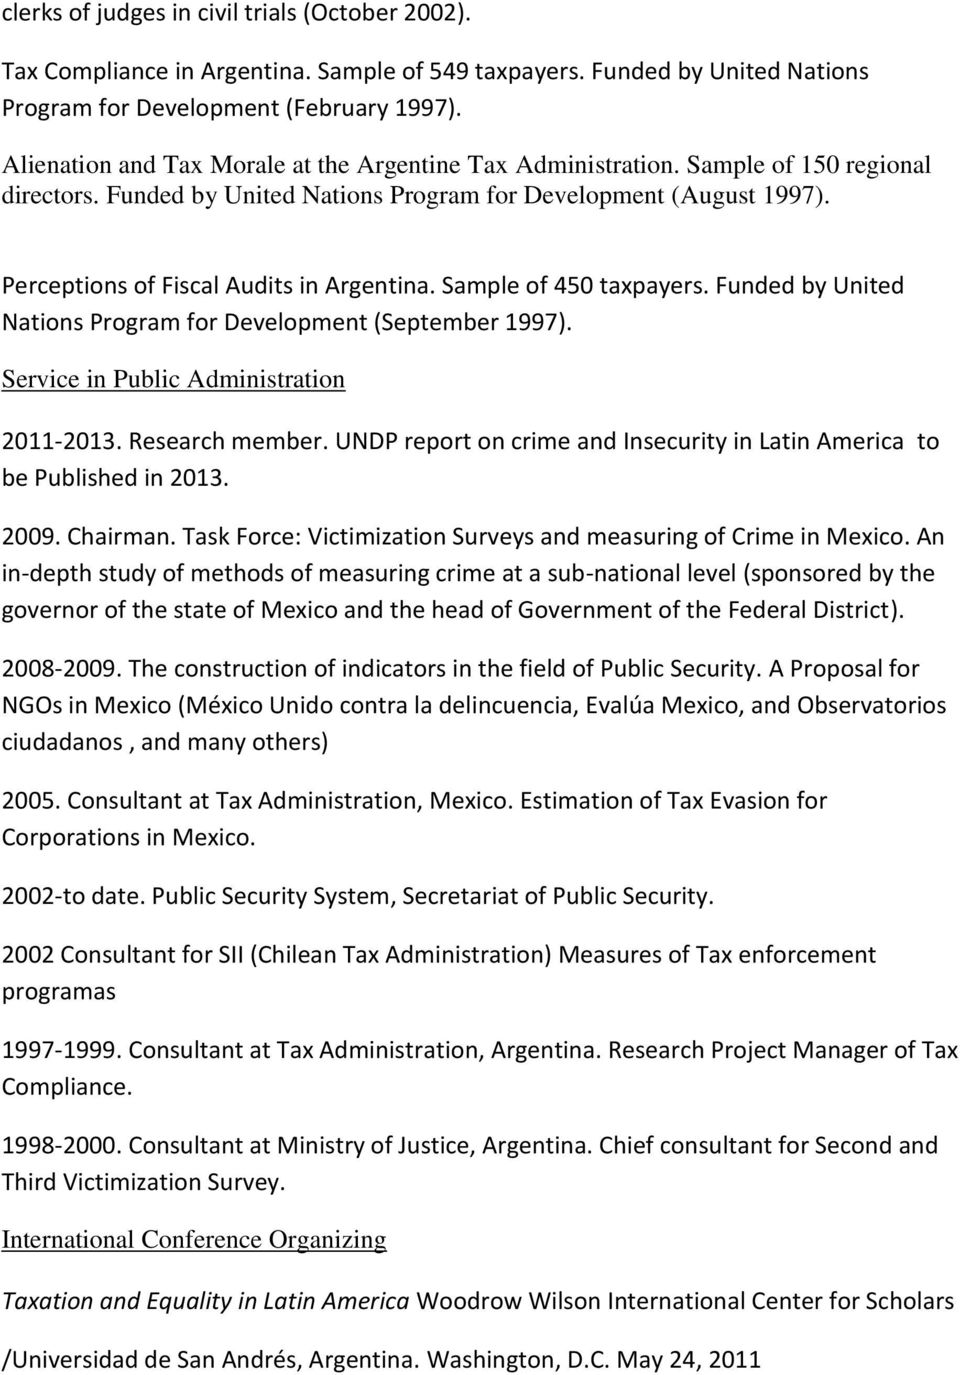 Perceptions of Fiscal Audits in Argentina. Sample of 450 taxpayers. Funded by United Nations Program for Development (September 1997). Service in Public Administration 2011-2013. Research member.